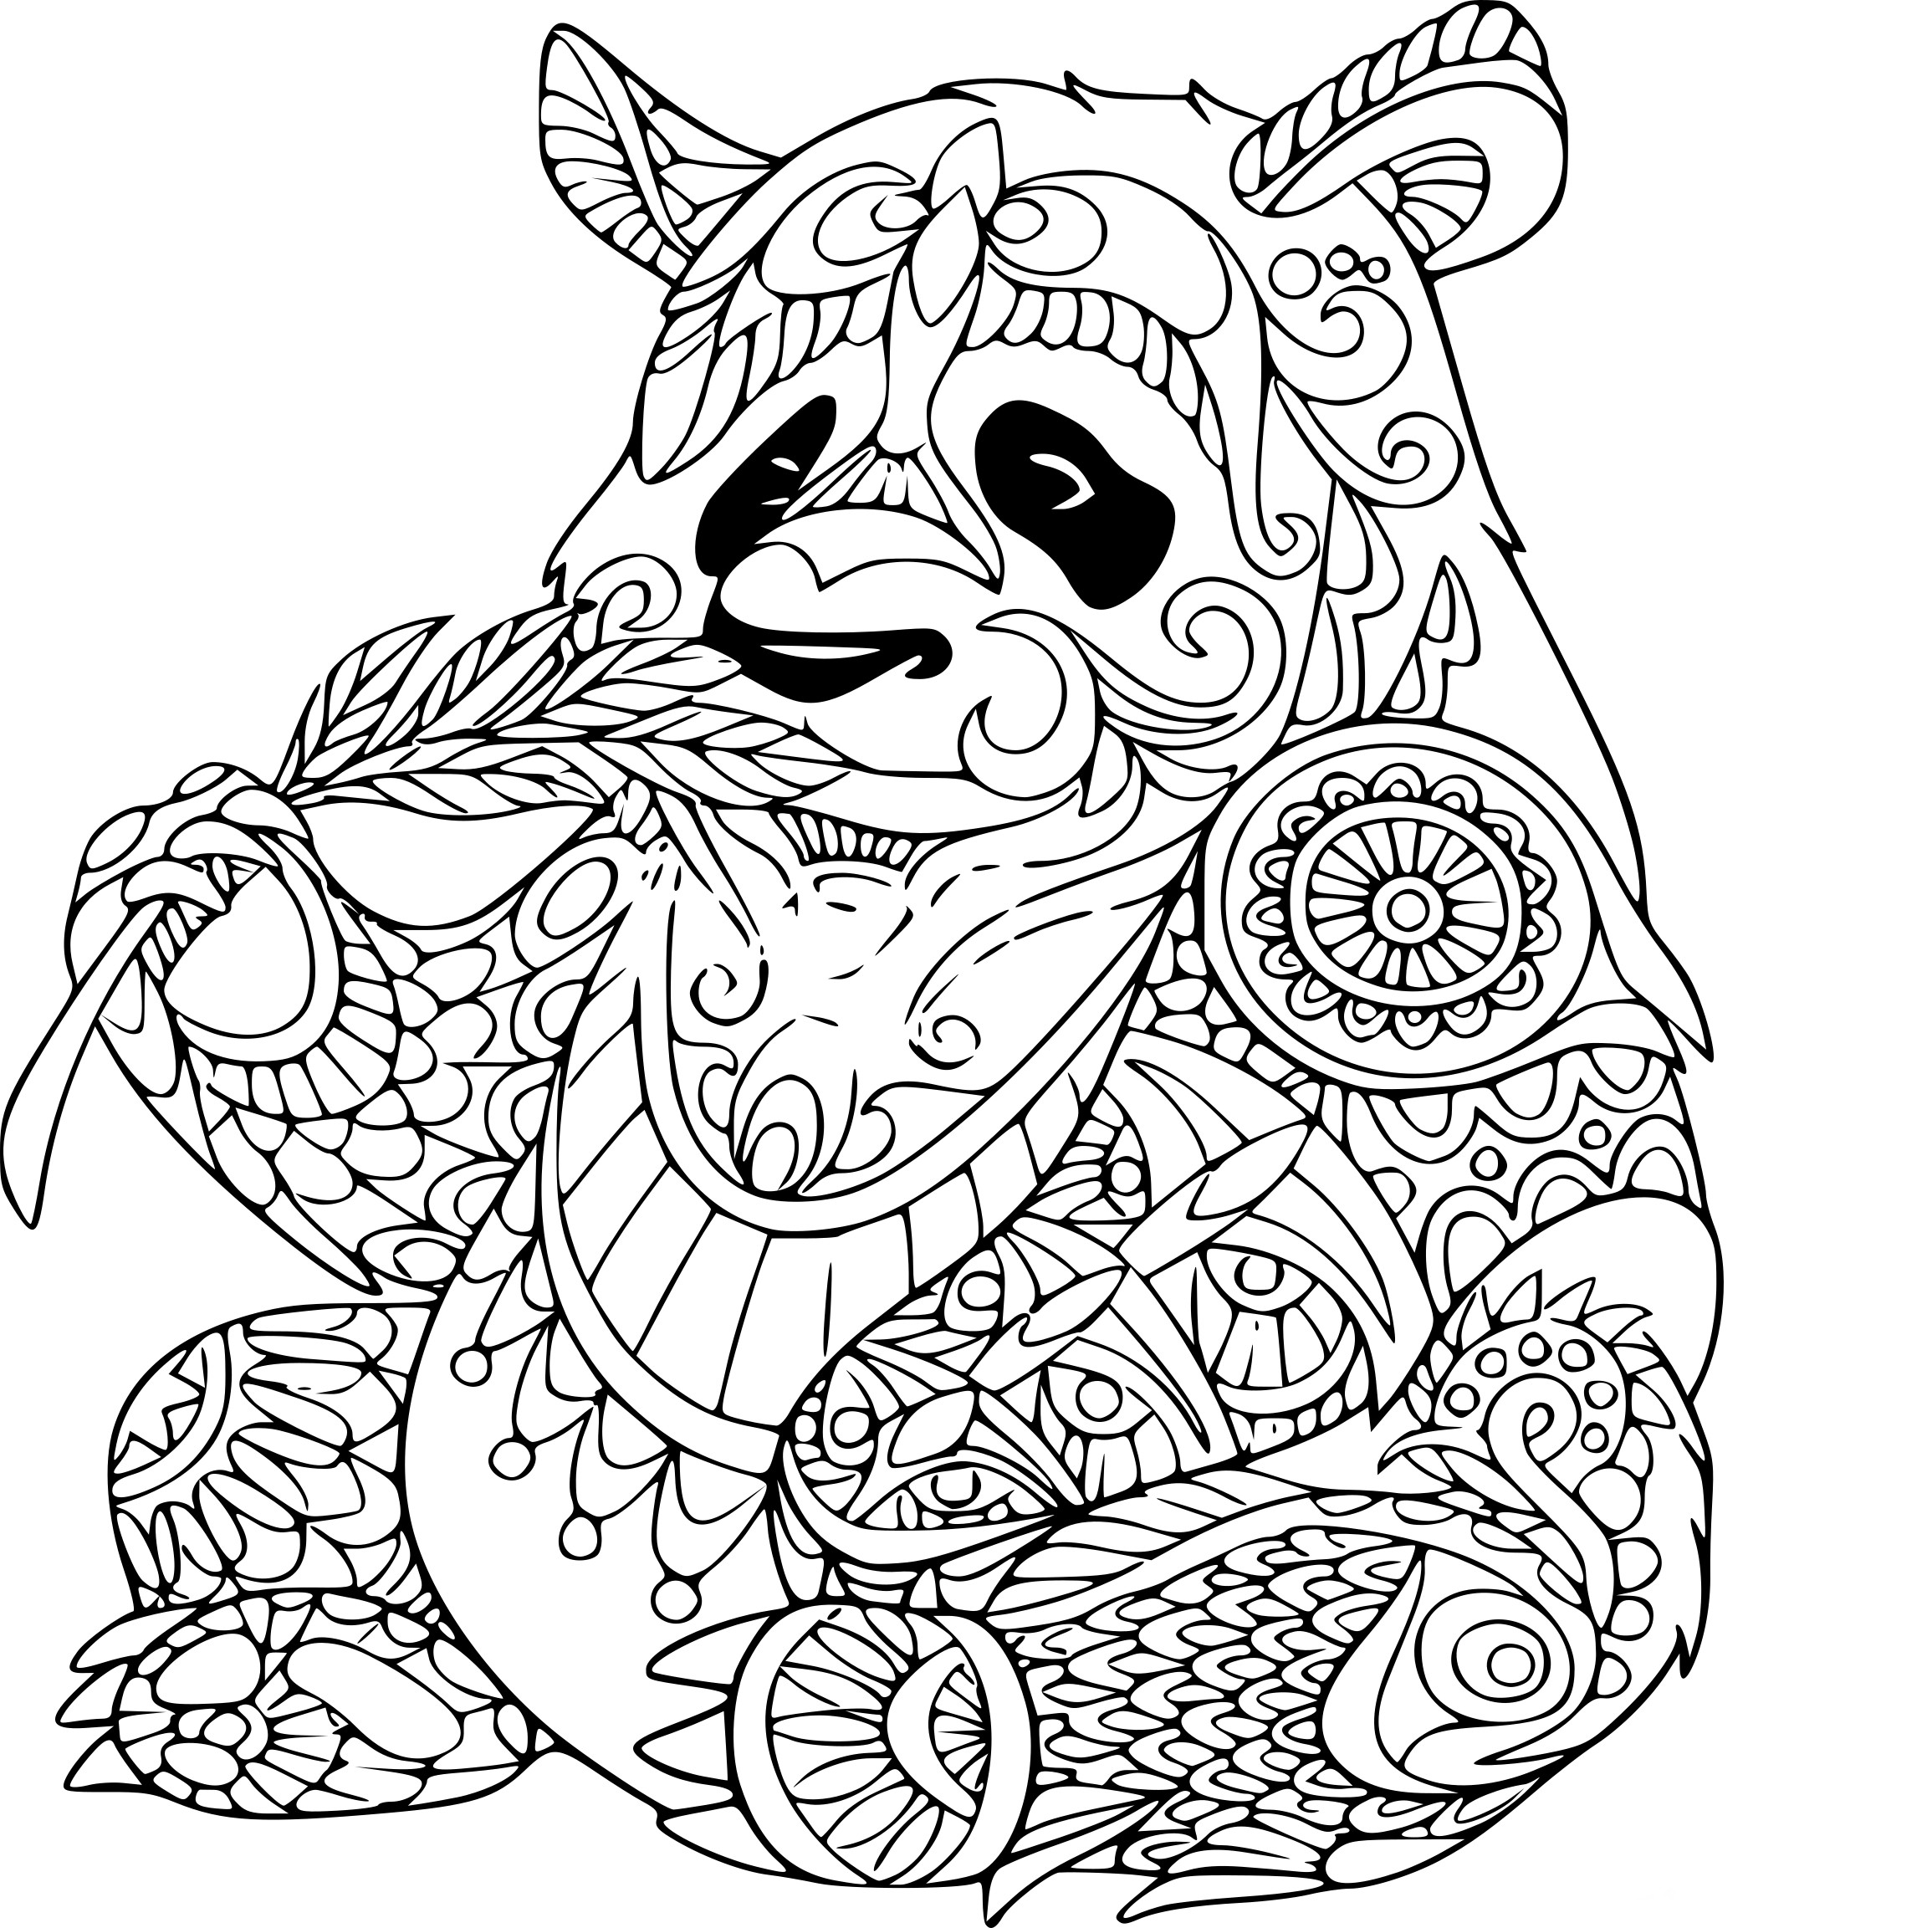 Coloriage anti stress pokemon - Coloriage panda ...